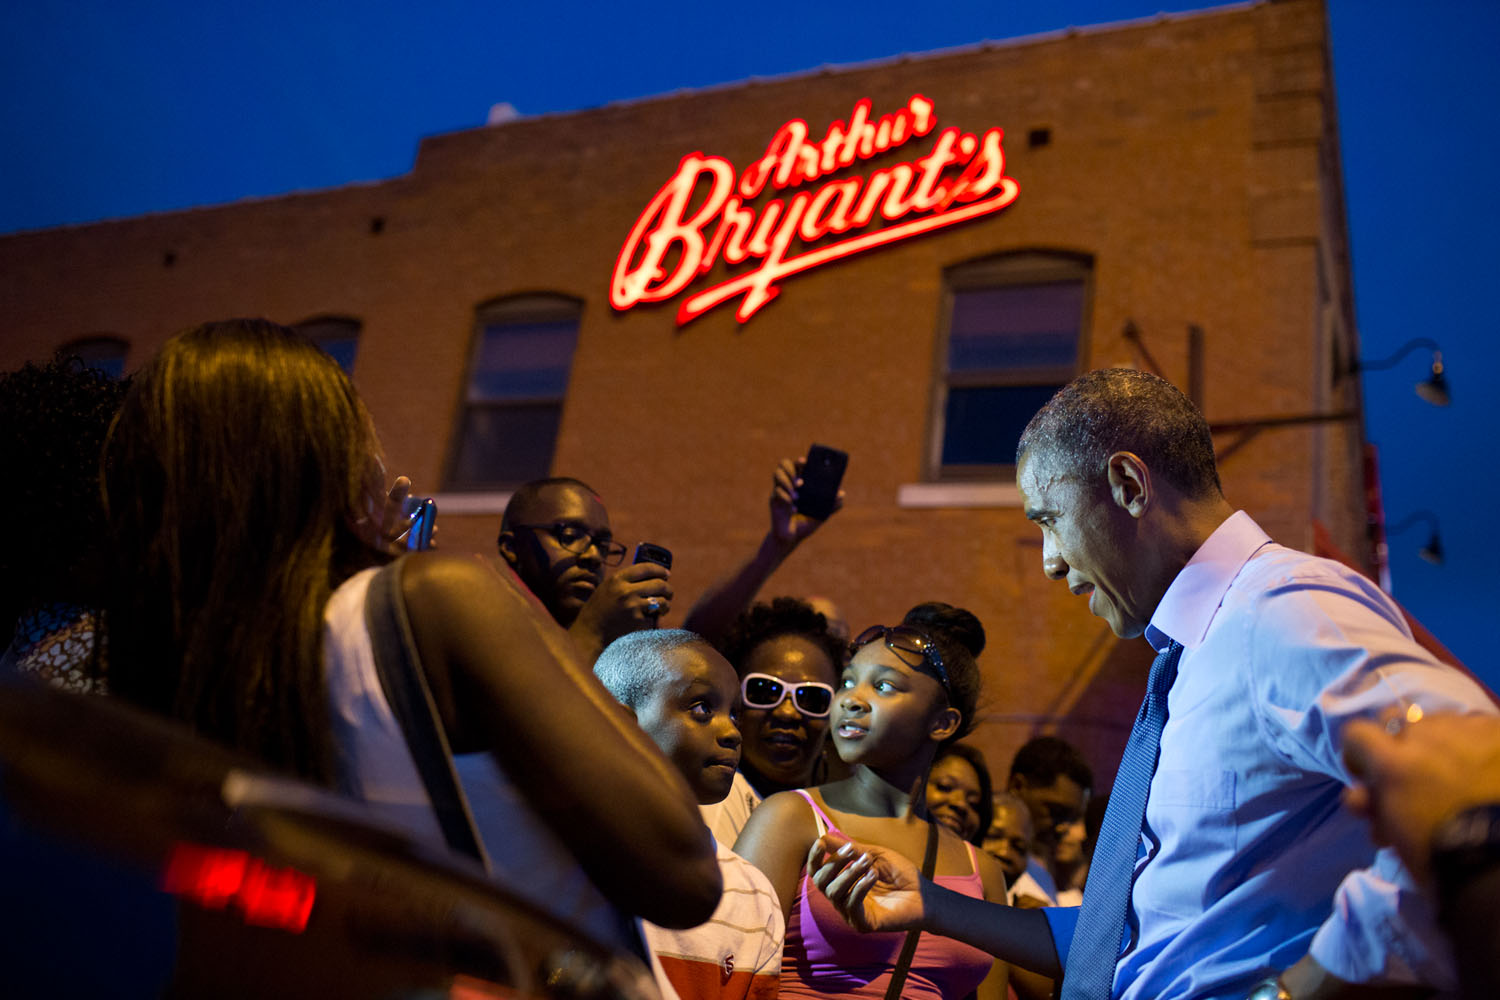 The president greets a crowd outside Arthur Bryant's Barbeque in Kansas City. Official White House photo by Pete Souza.